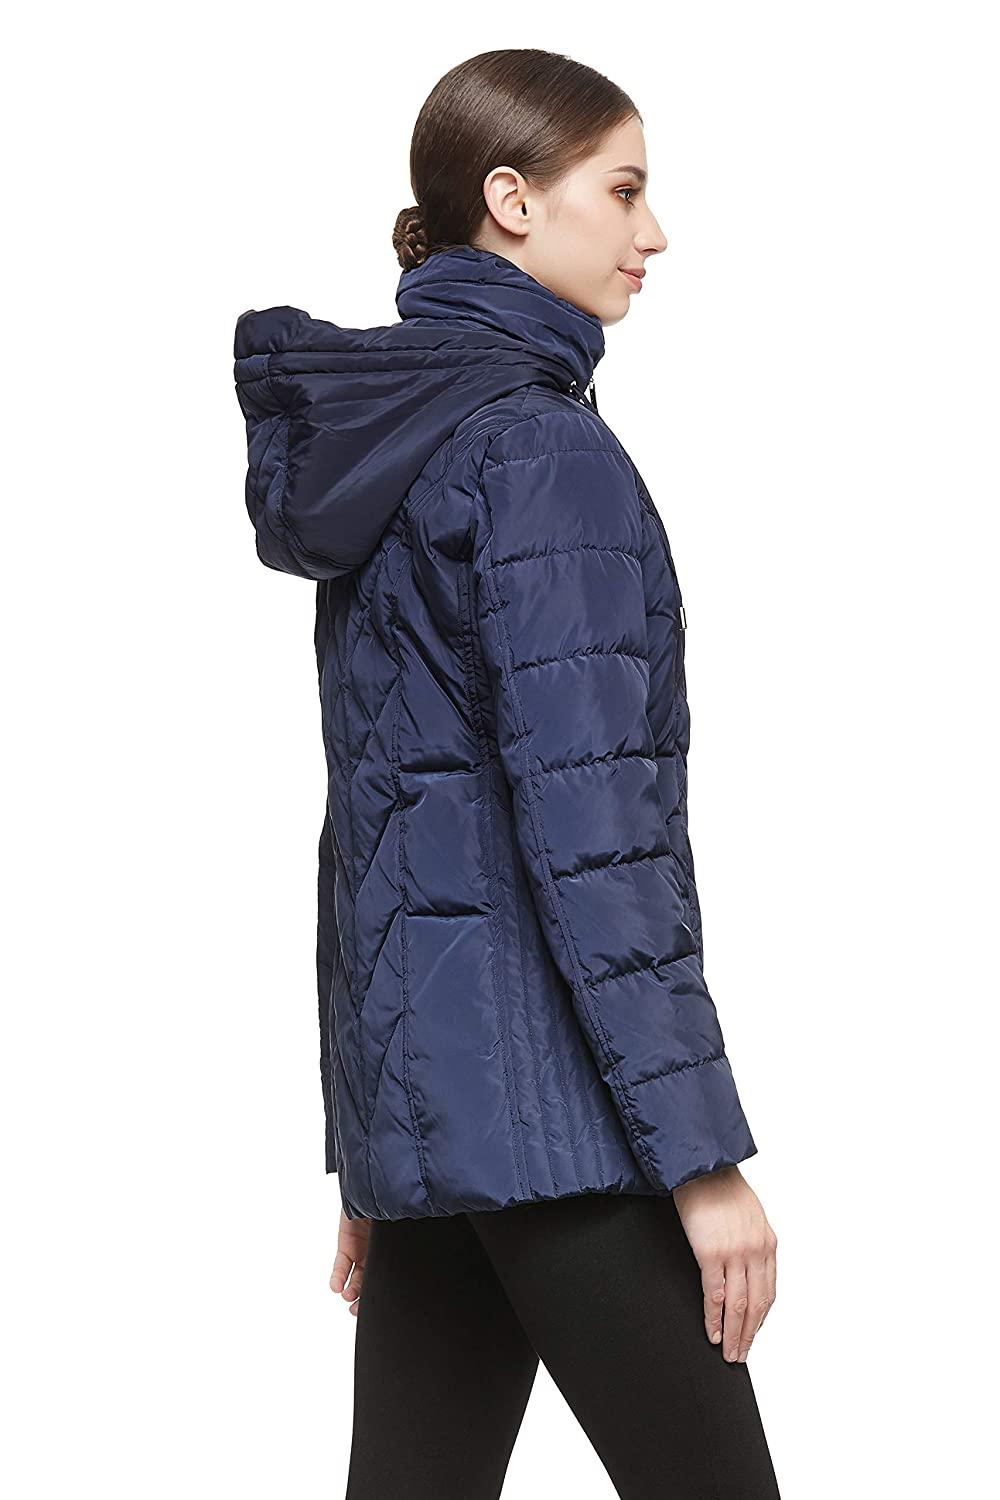 Orolay Womens Thickened Puffer Down Jacket Hooded Coat